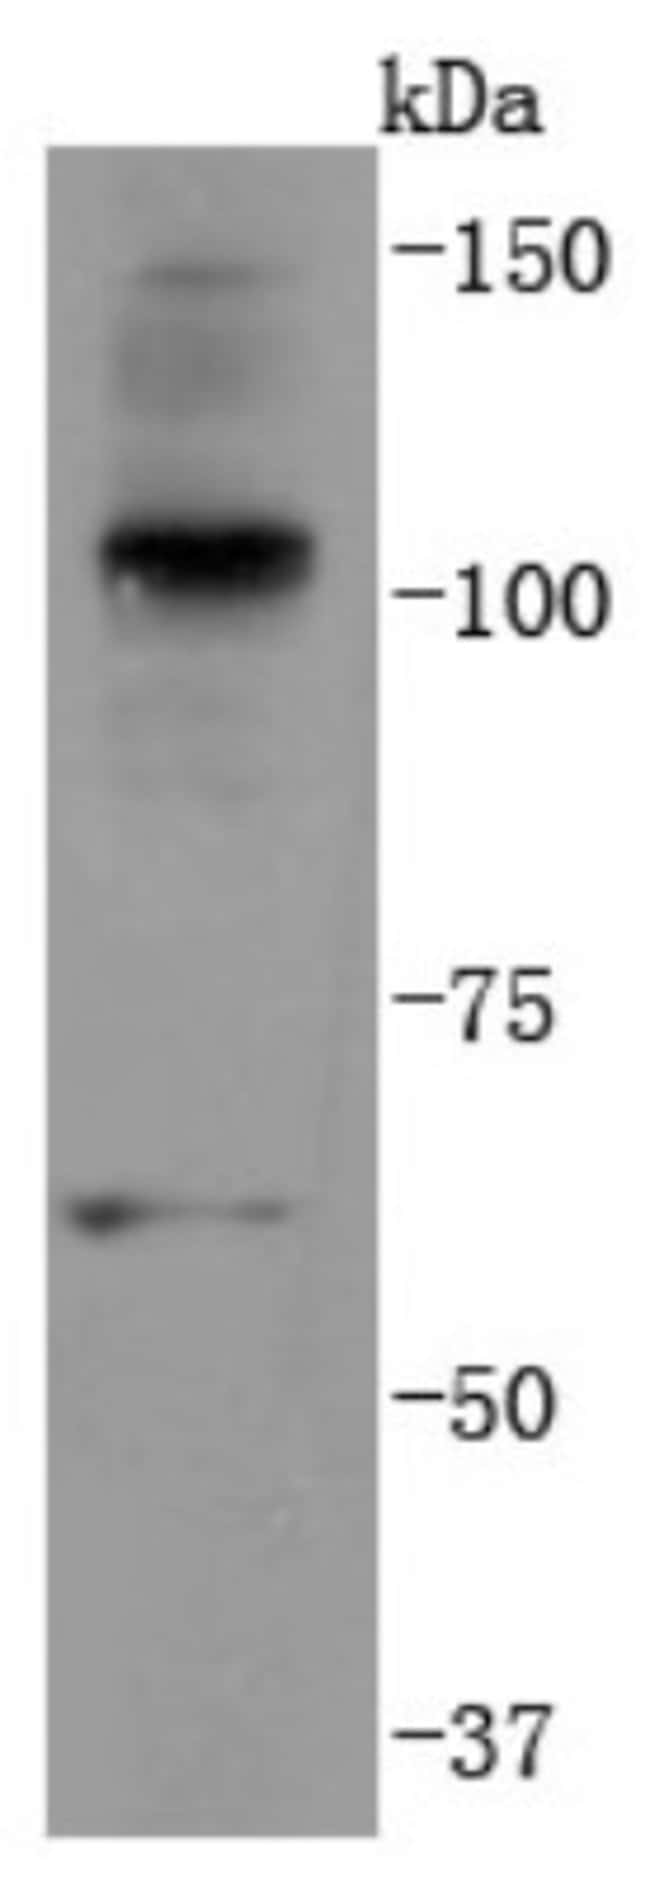 UbiquitinB Rabbit anti-Human, Clone: JM09-67, Novus Biologicals 100μL:Antibodies